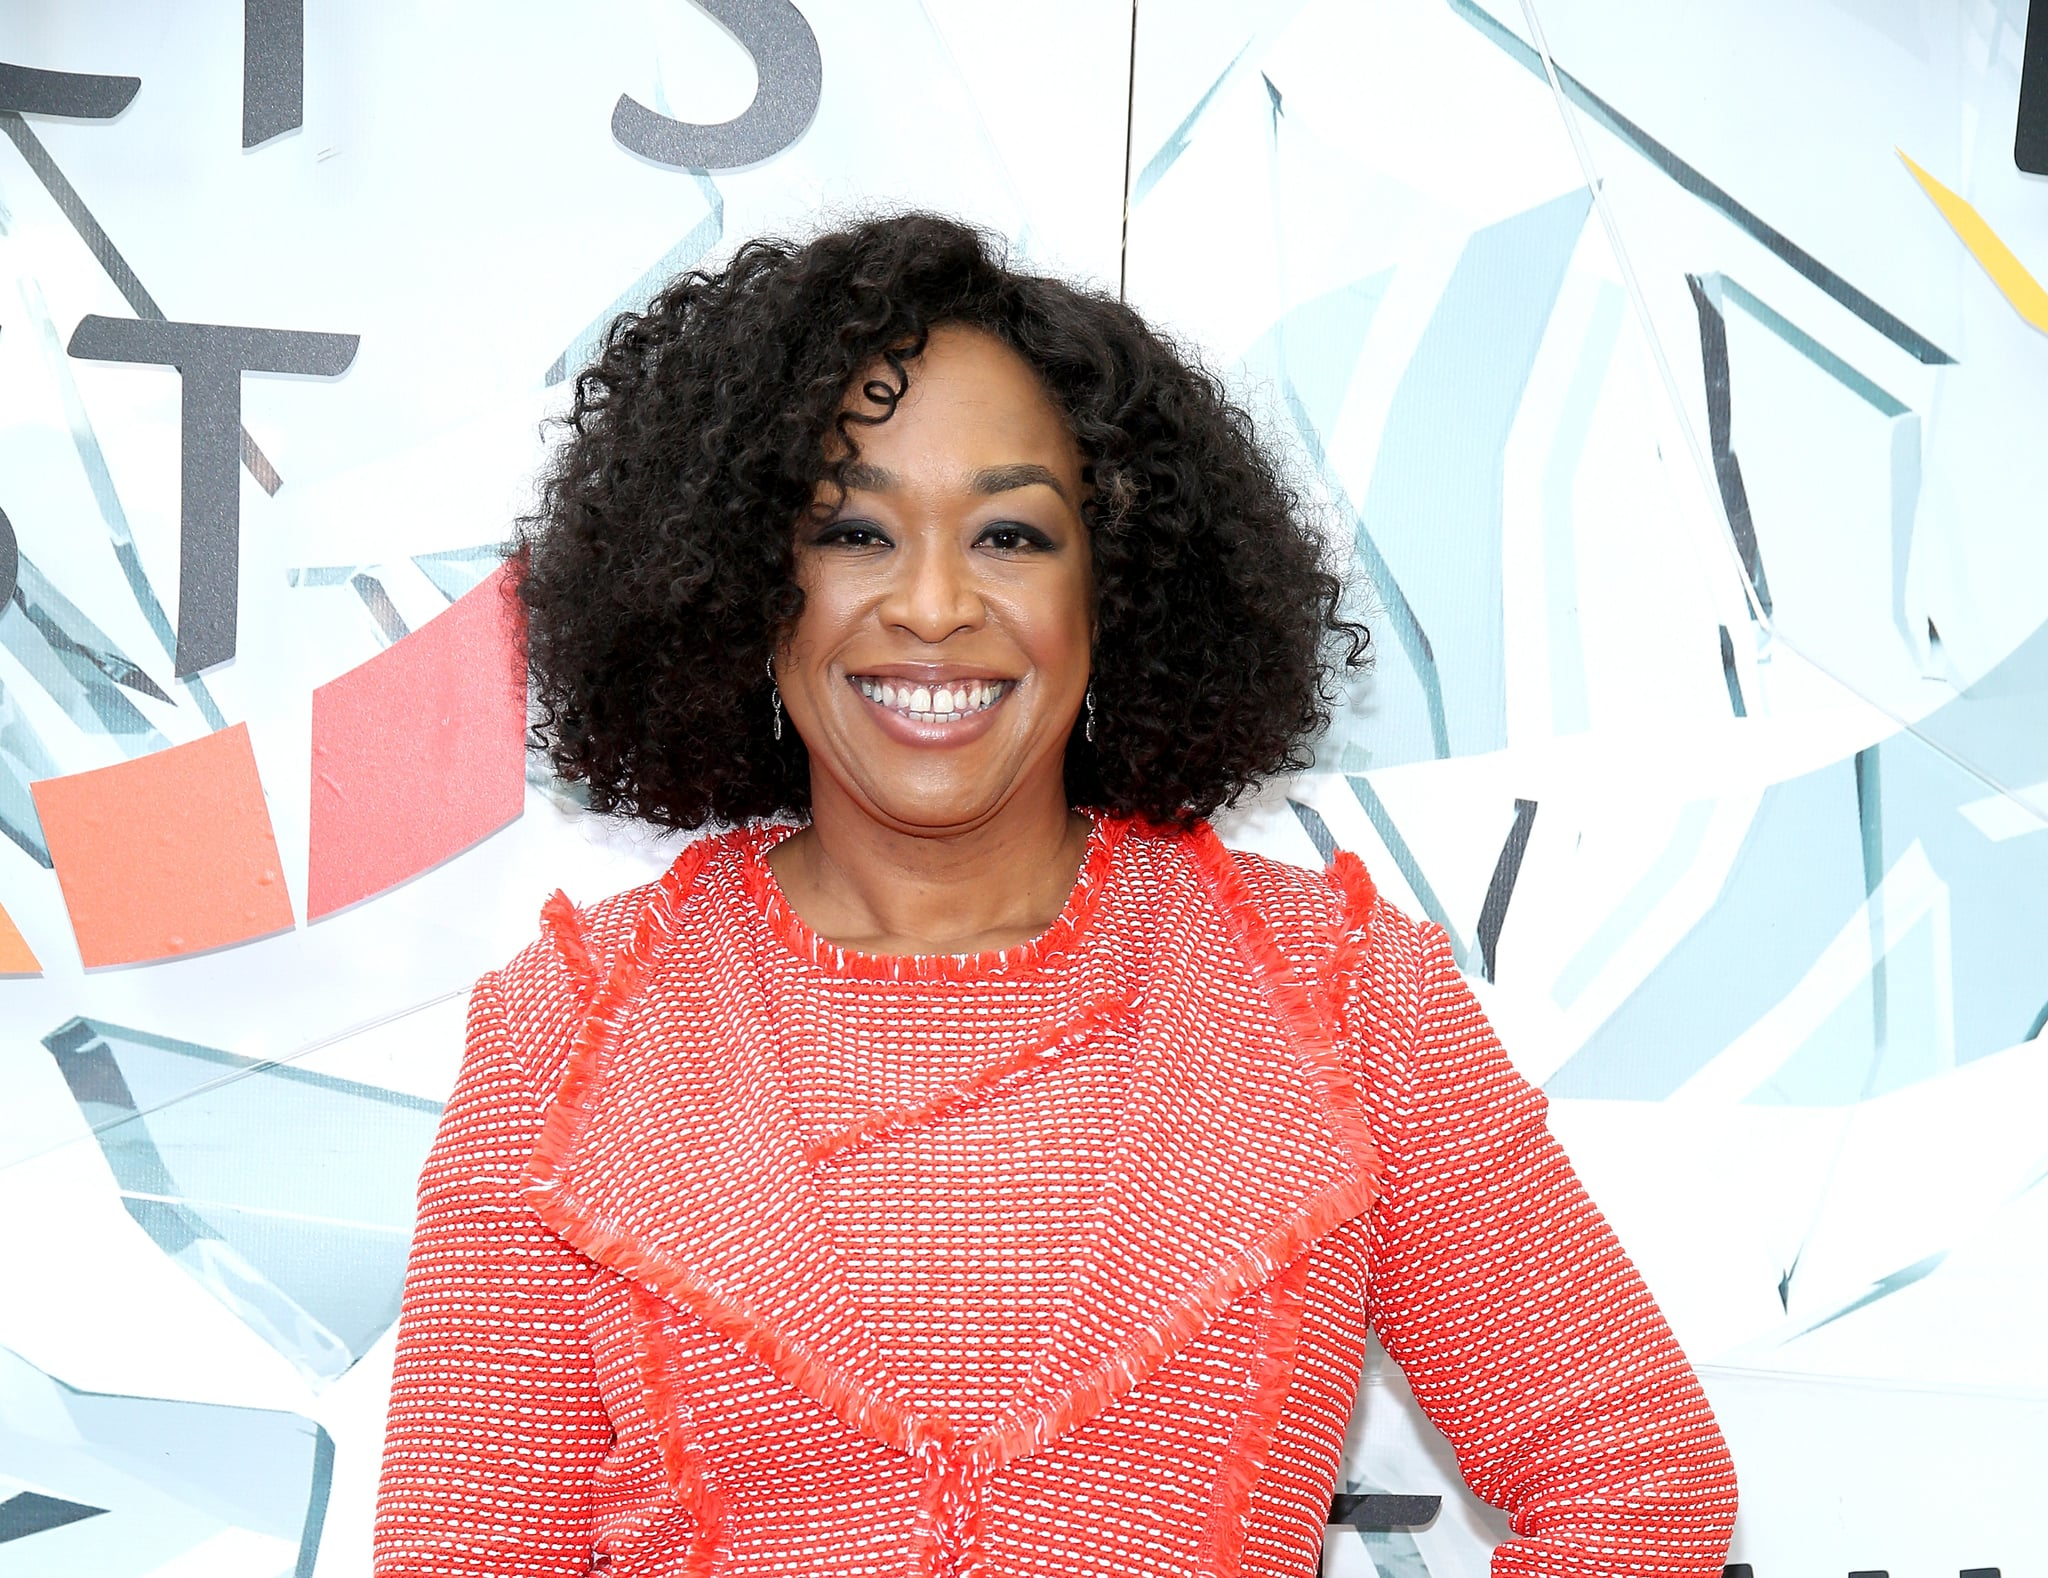 PHILADELPHIA, PA - JULY 27:  Producer and writter Shonda Rhimes attends EMILY's List Breaking Through 2016 at the Democratic National Convention at Kimmel Center for the Performing Arts on July 27, 2016 in Philadelphia, Pennsylvania.  (Photo by Paul Zimmerman/Getty Images For EMILY's List)